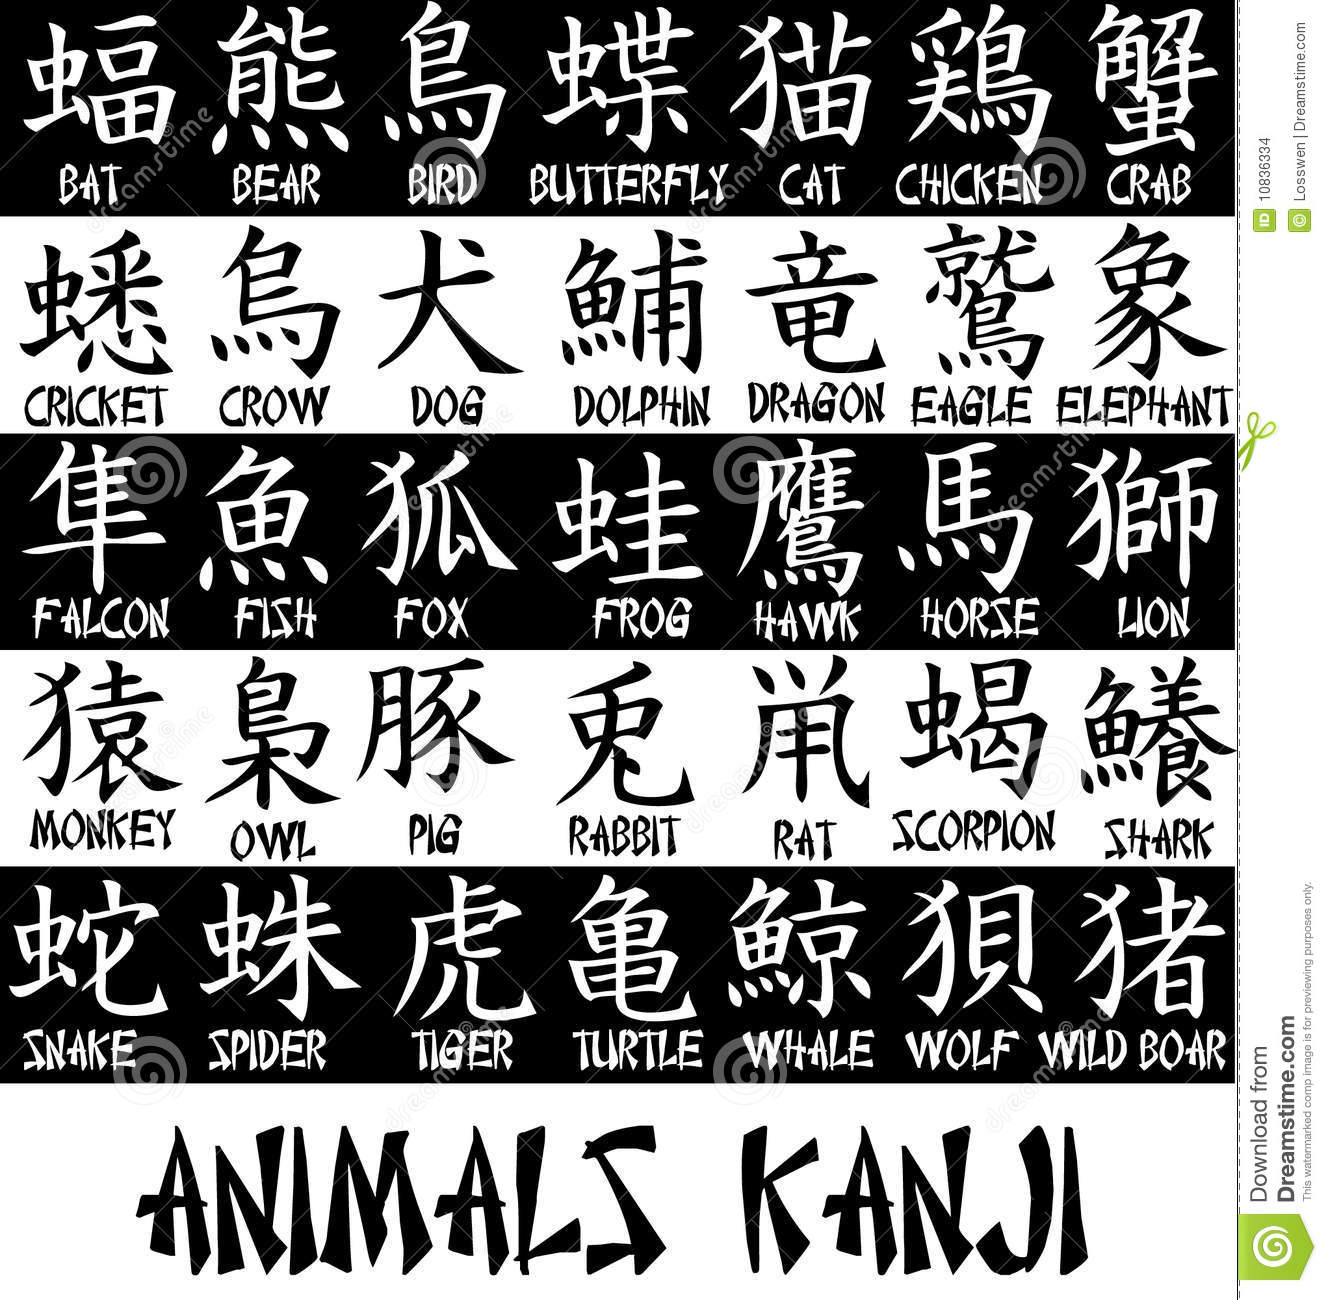 Japanese Symbols And Their Meanings Animals Bigking Keywords And